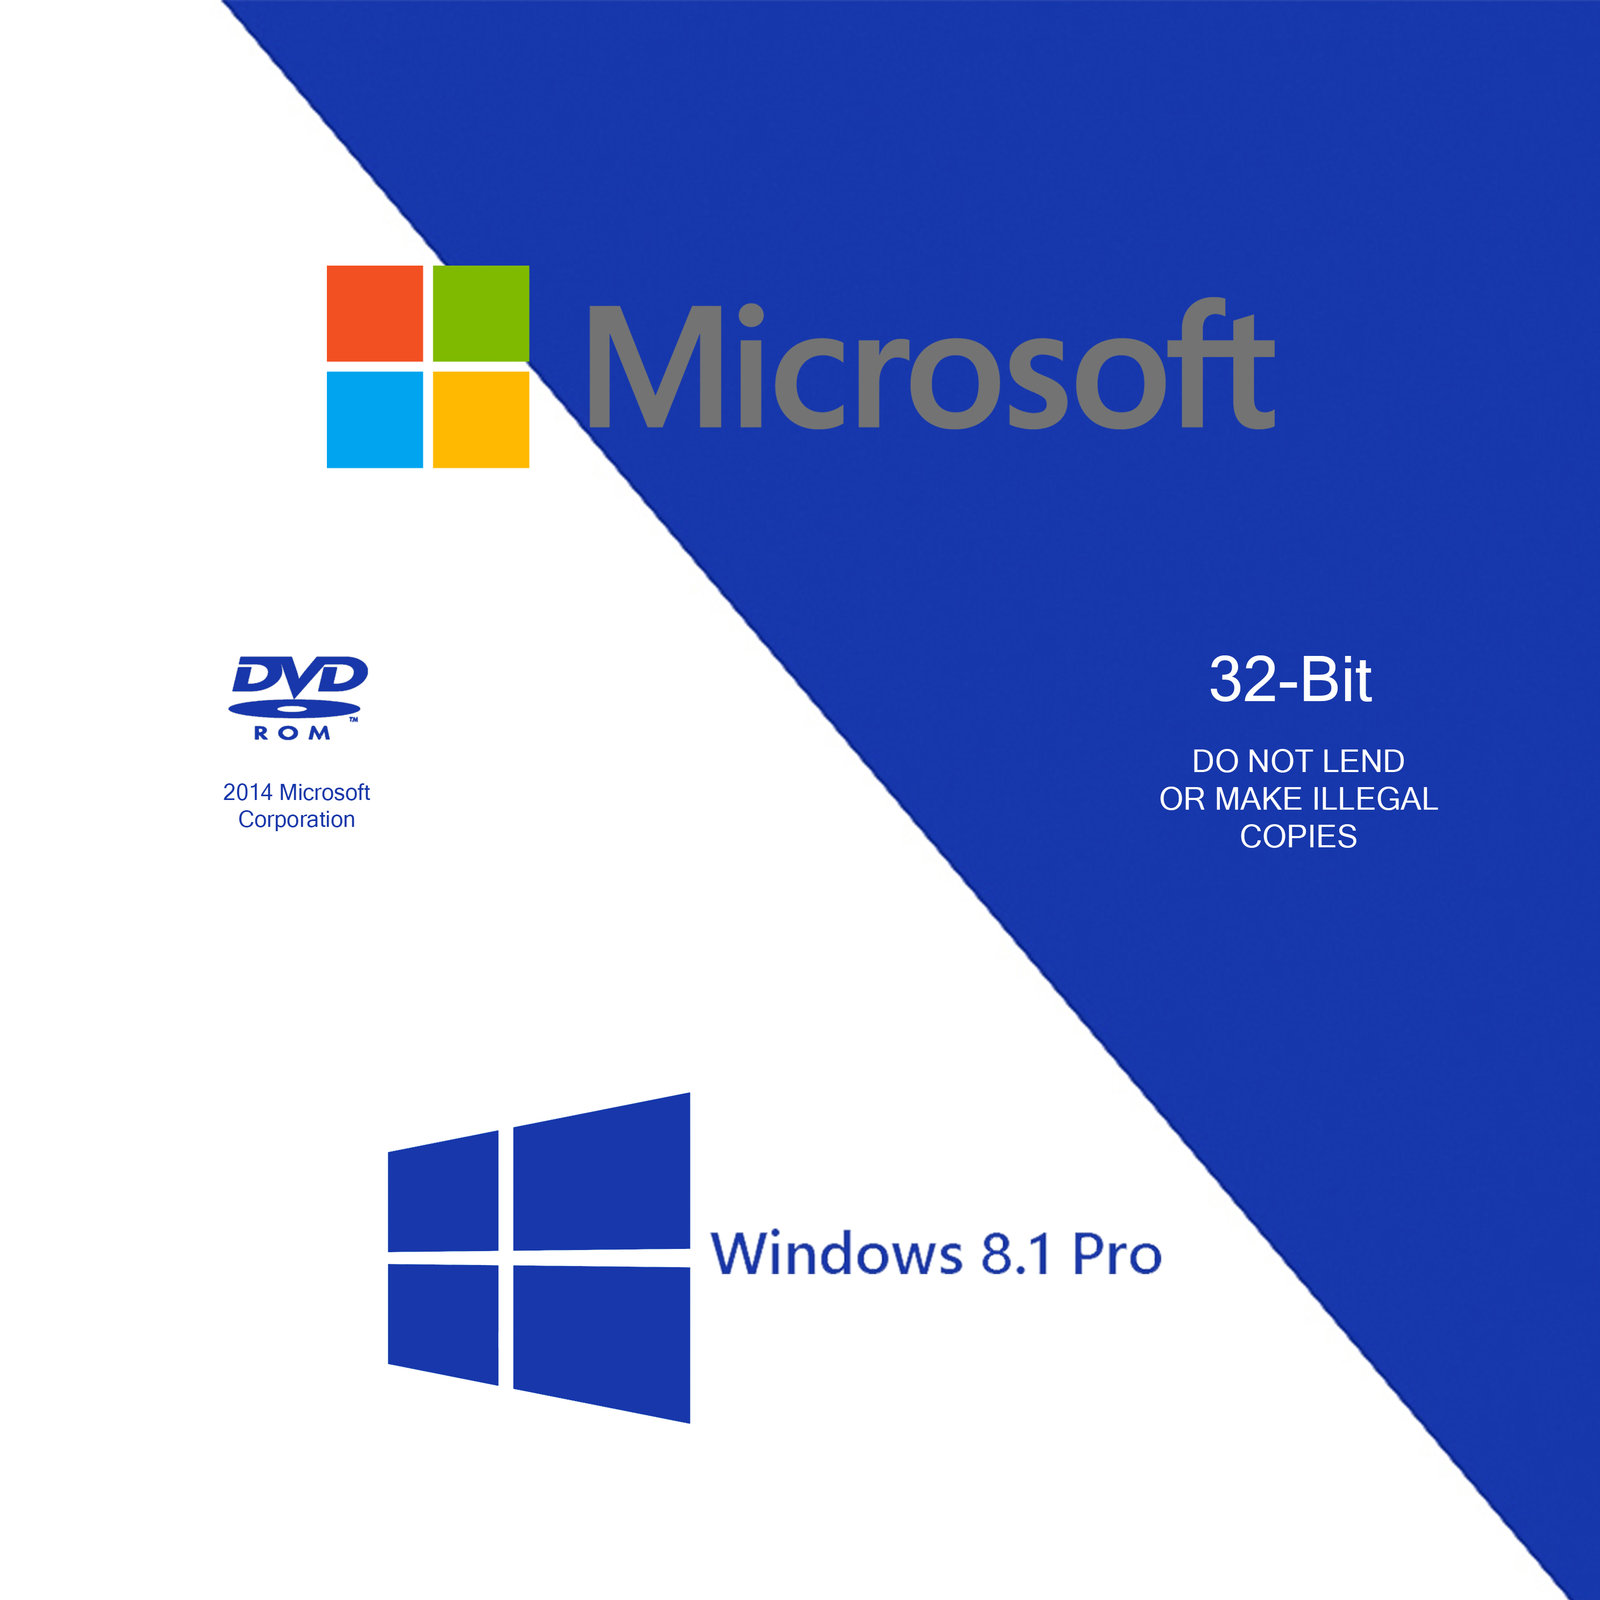 Jual windows 8 1 pro 32bit fqc 06987 for Microsoft windows windows